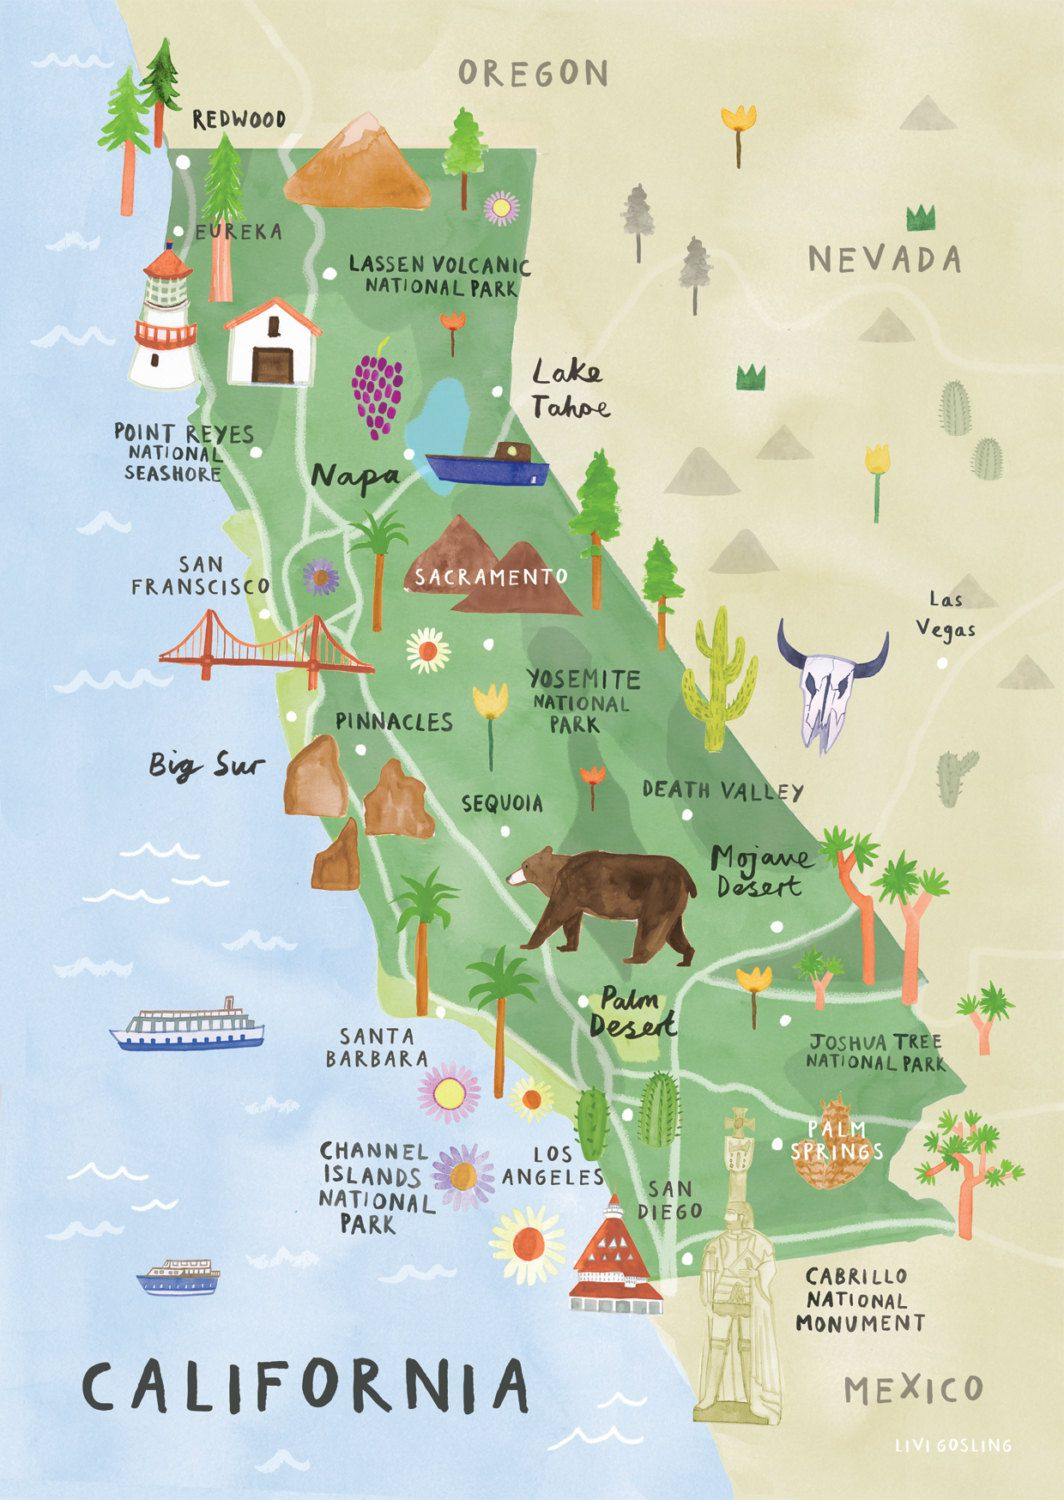 California Illustrated Map - California Print - California Map - California Vacation Map